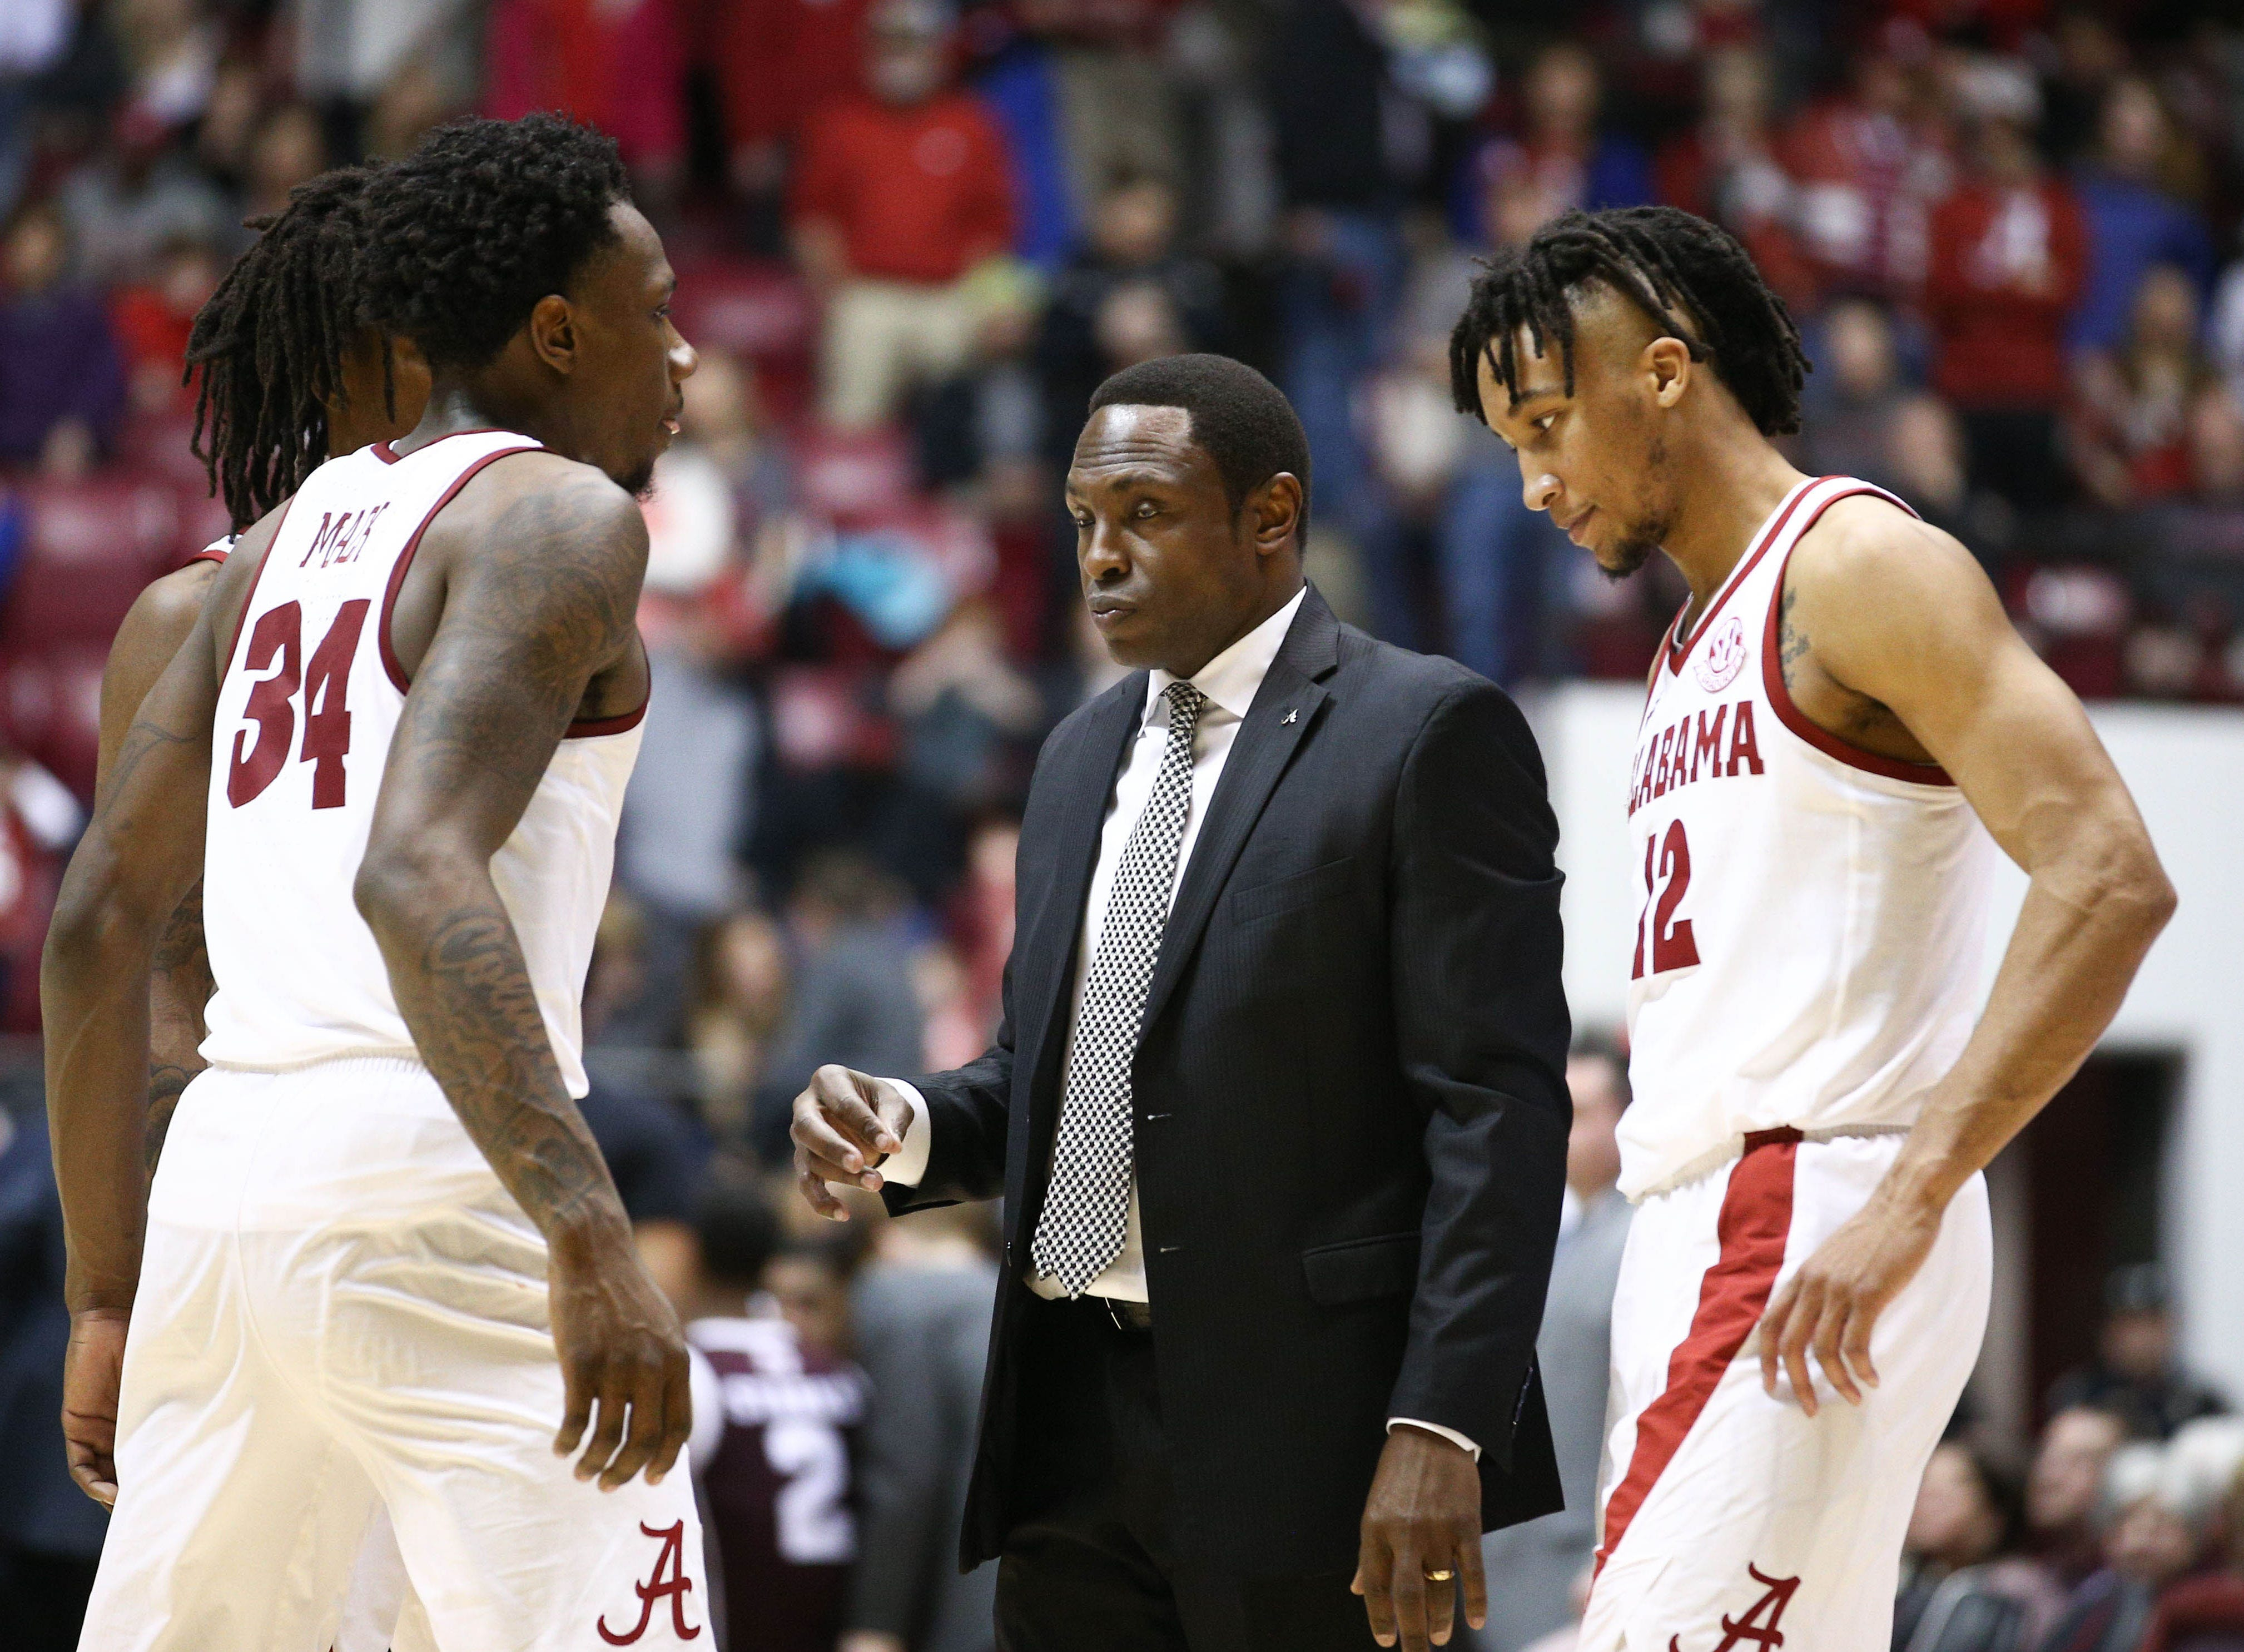 Jan 12, 2019; Tuscaloosa, AL, USA; Alabama Crimson Tide head coach Avery Johnson prepares to talk to his team during a timeout during the second half against Texas A&M Aggies at Coleman Coliseum. Mandatory Credit: Marvin Gentry-USA TODAY Sports